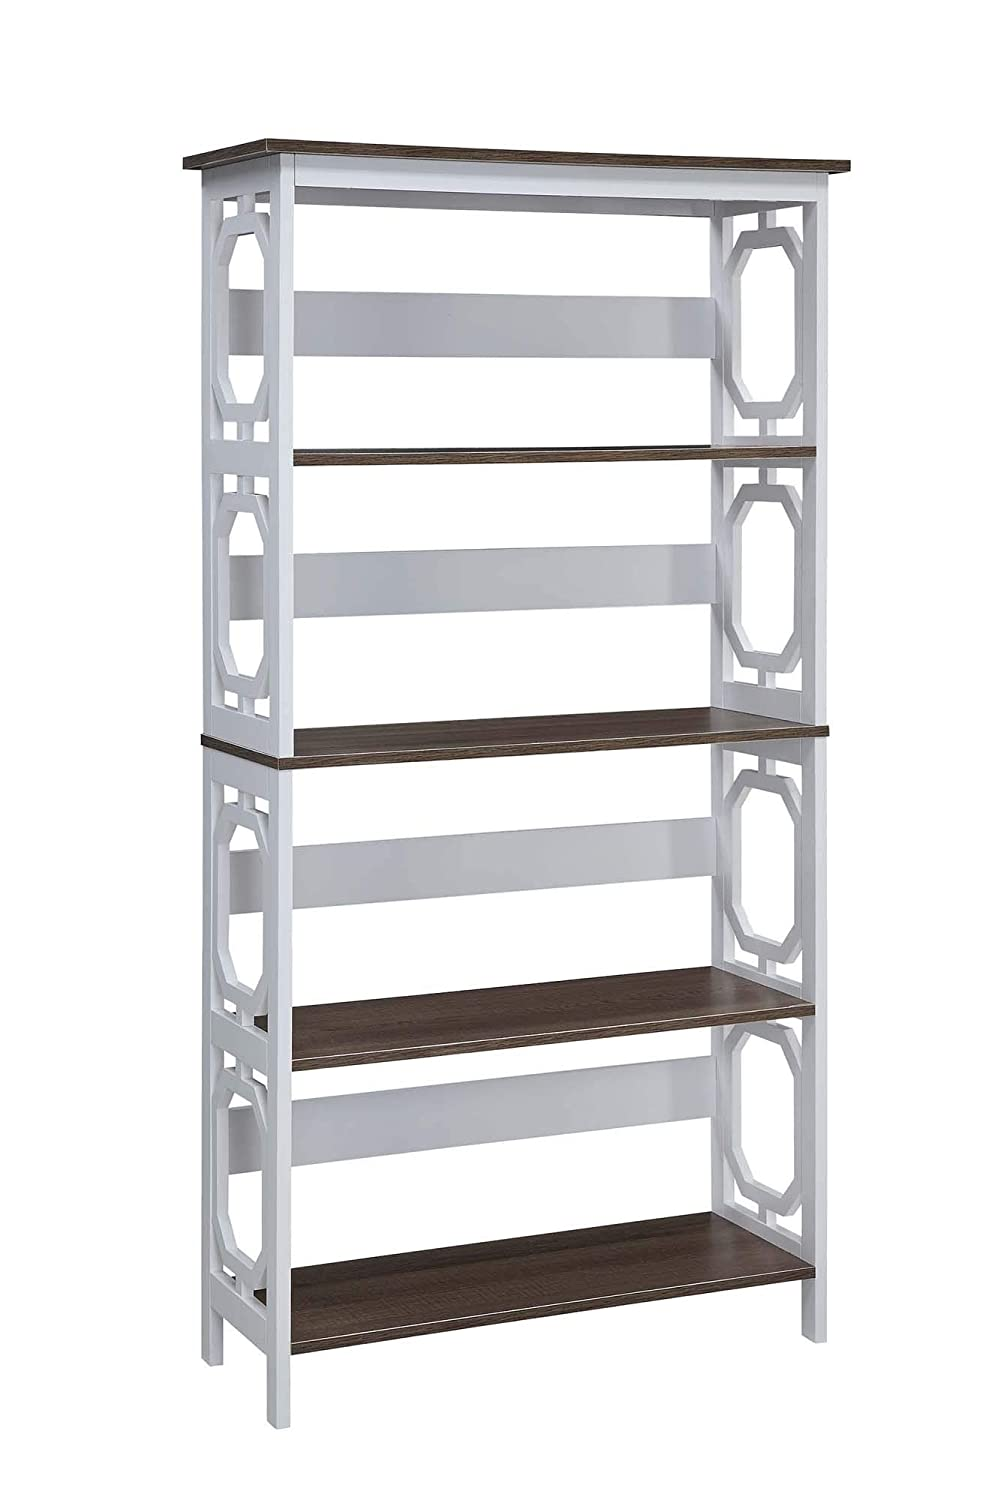 Convenience Concepts 203250wdftw Omega 5 Tier Bookcase, Driftwood  Shelves/white Frame